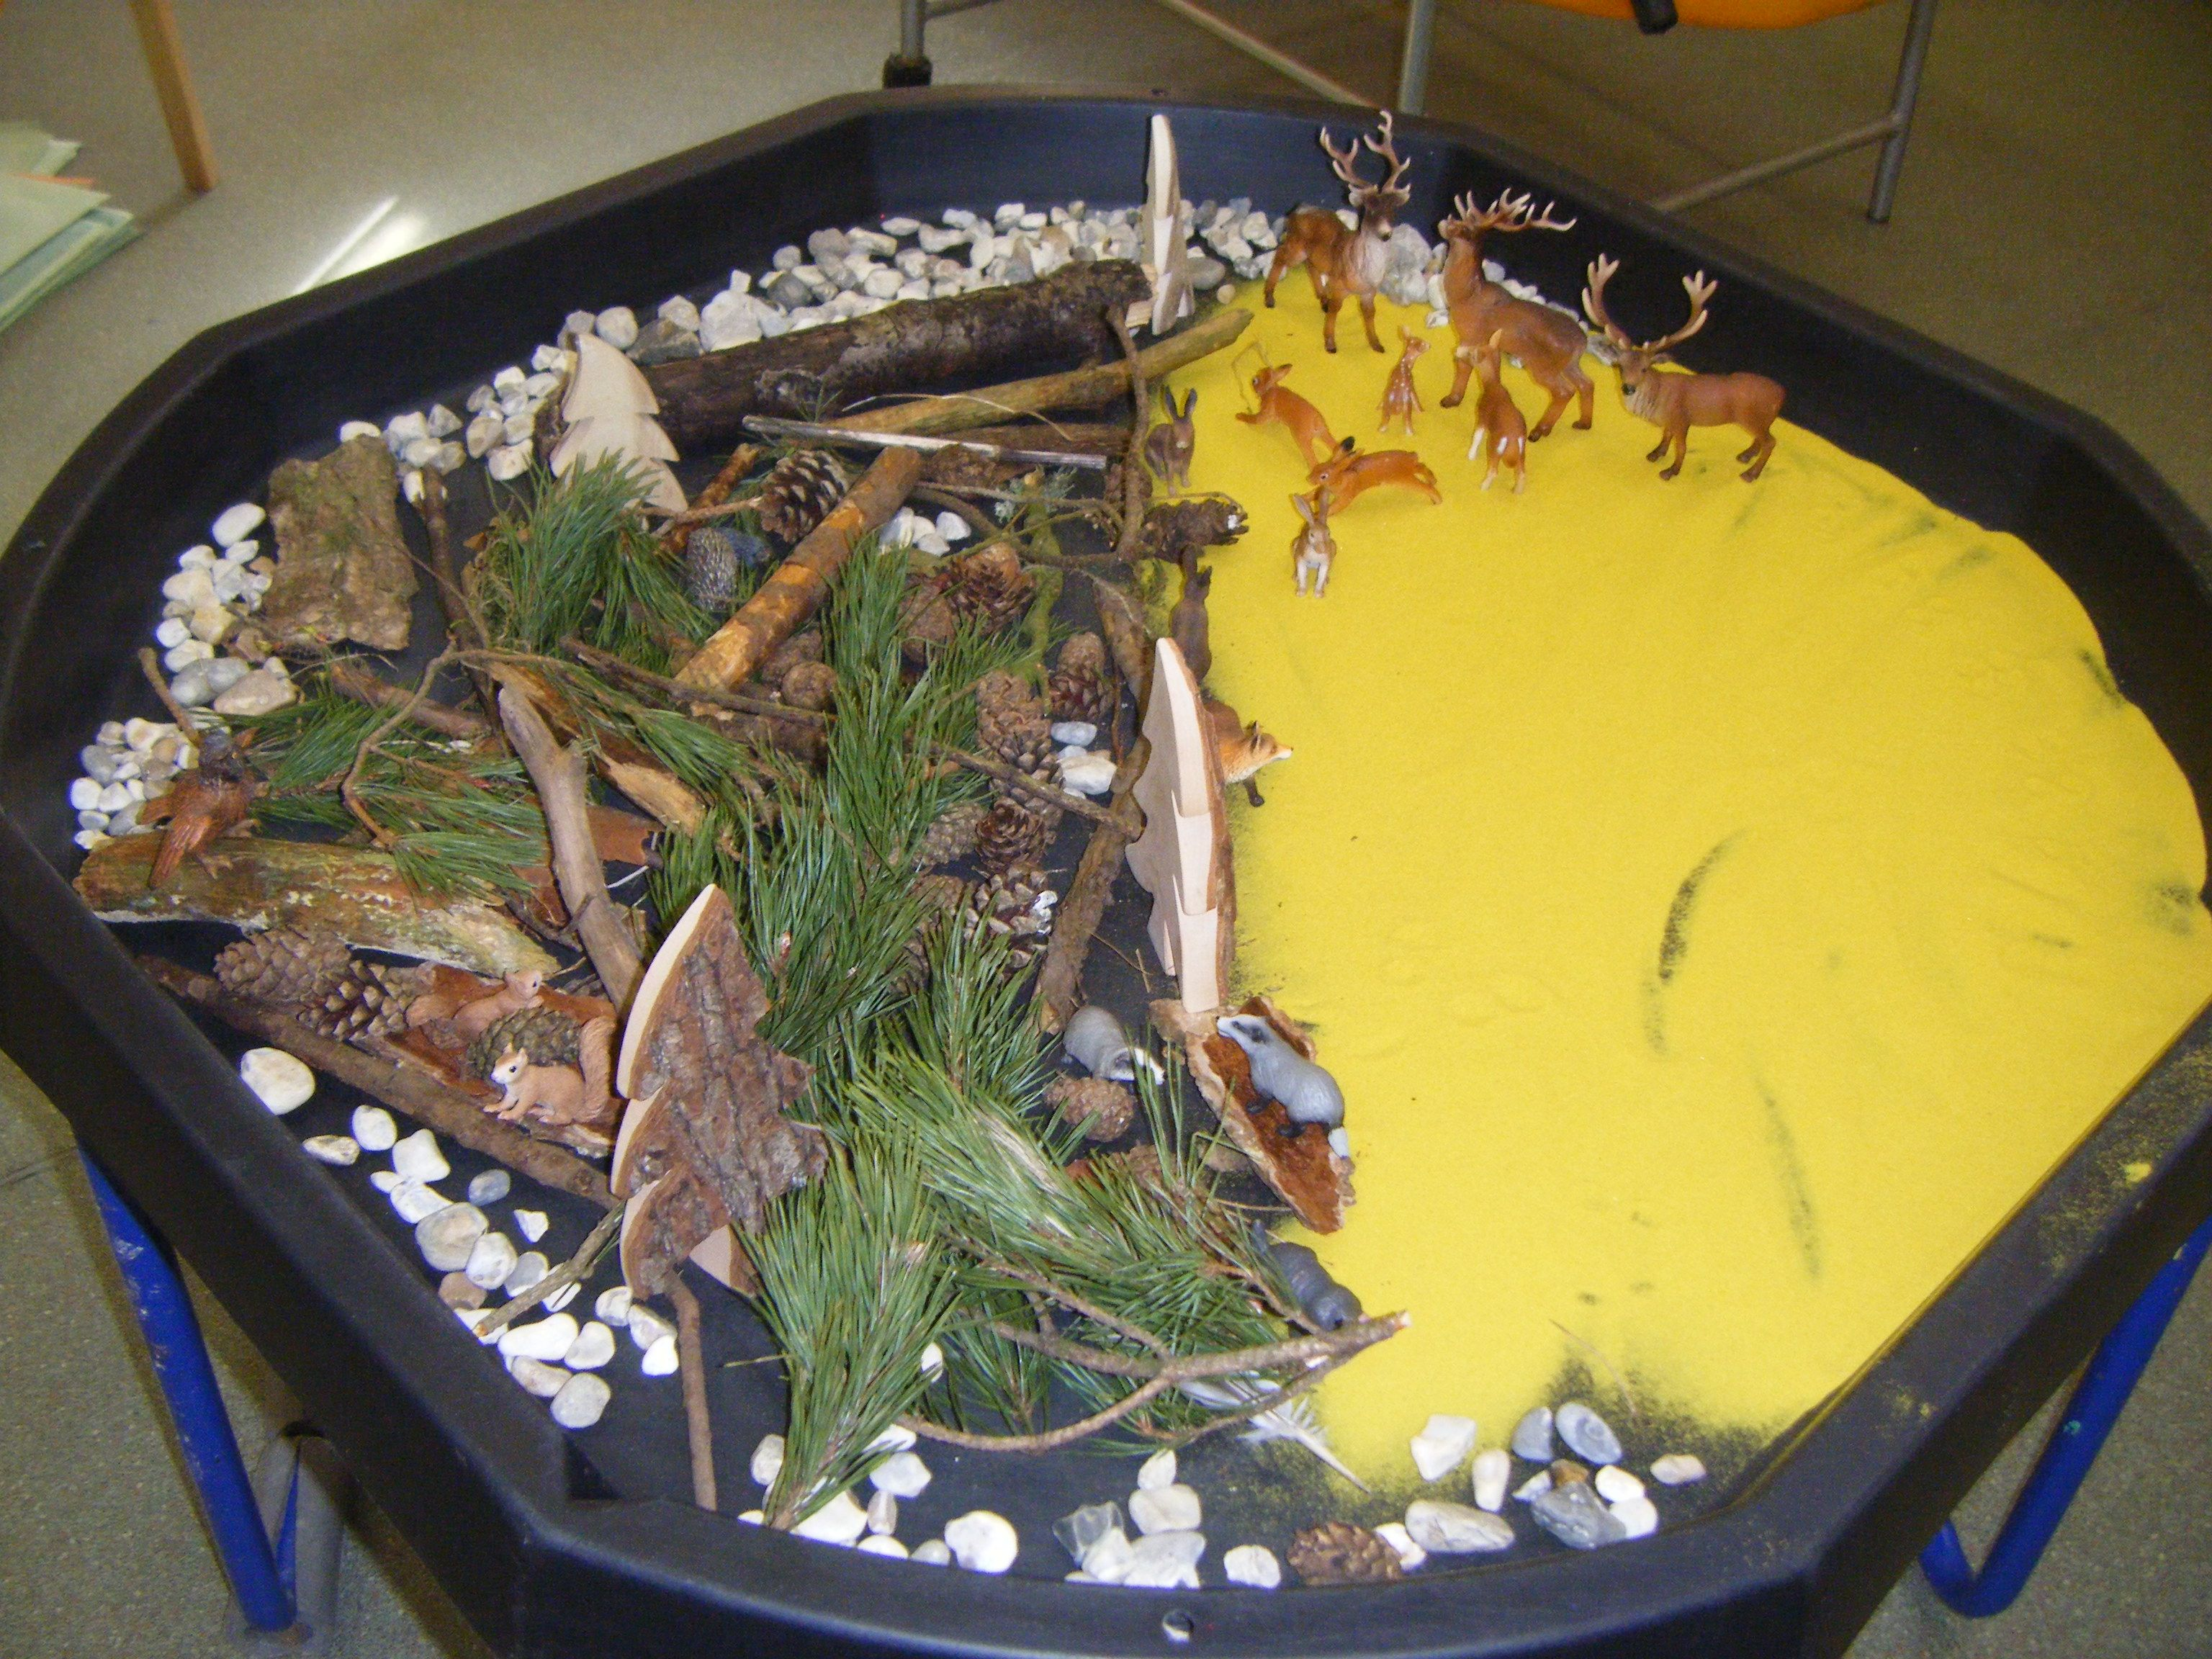 Wildlife Sensory Play On What Looks To Be A Large Plastic Lid Sensory Play Tuff